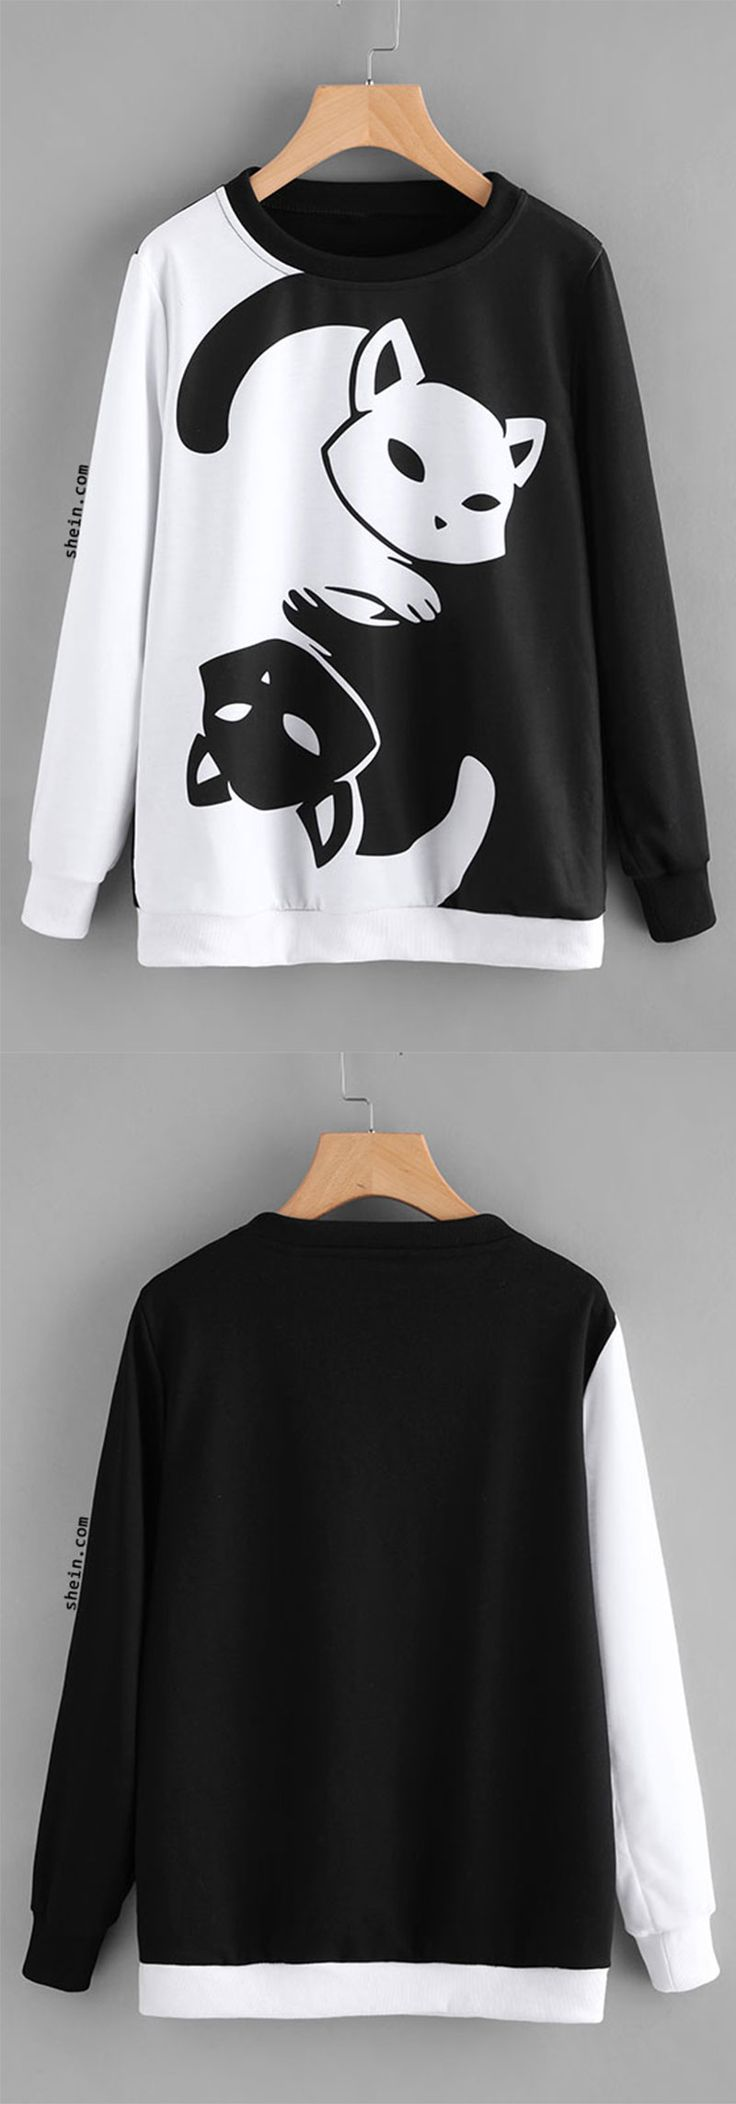 Unicorn Print Sweatshirt